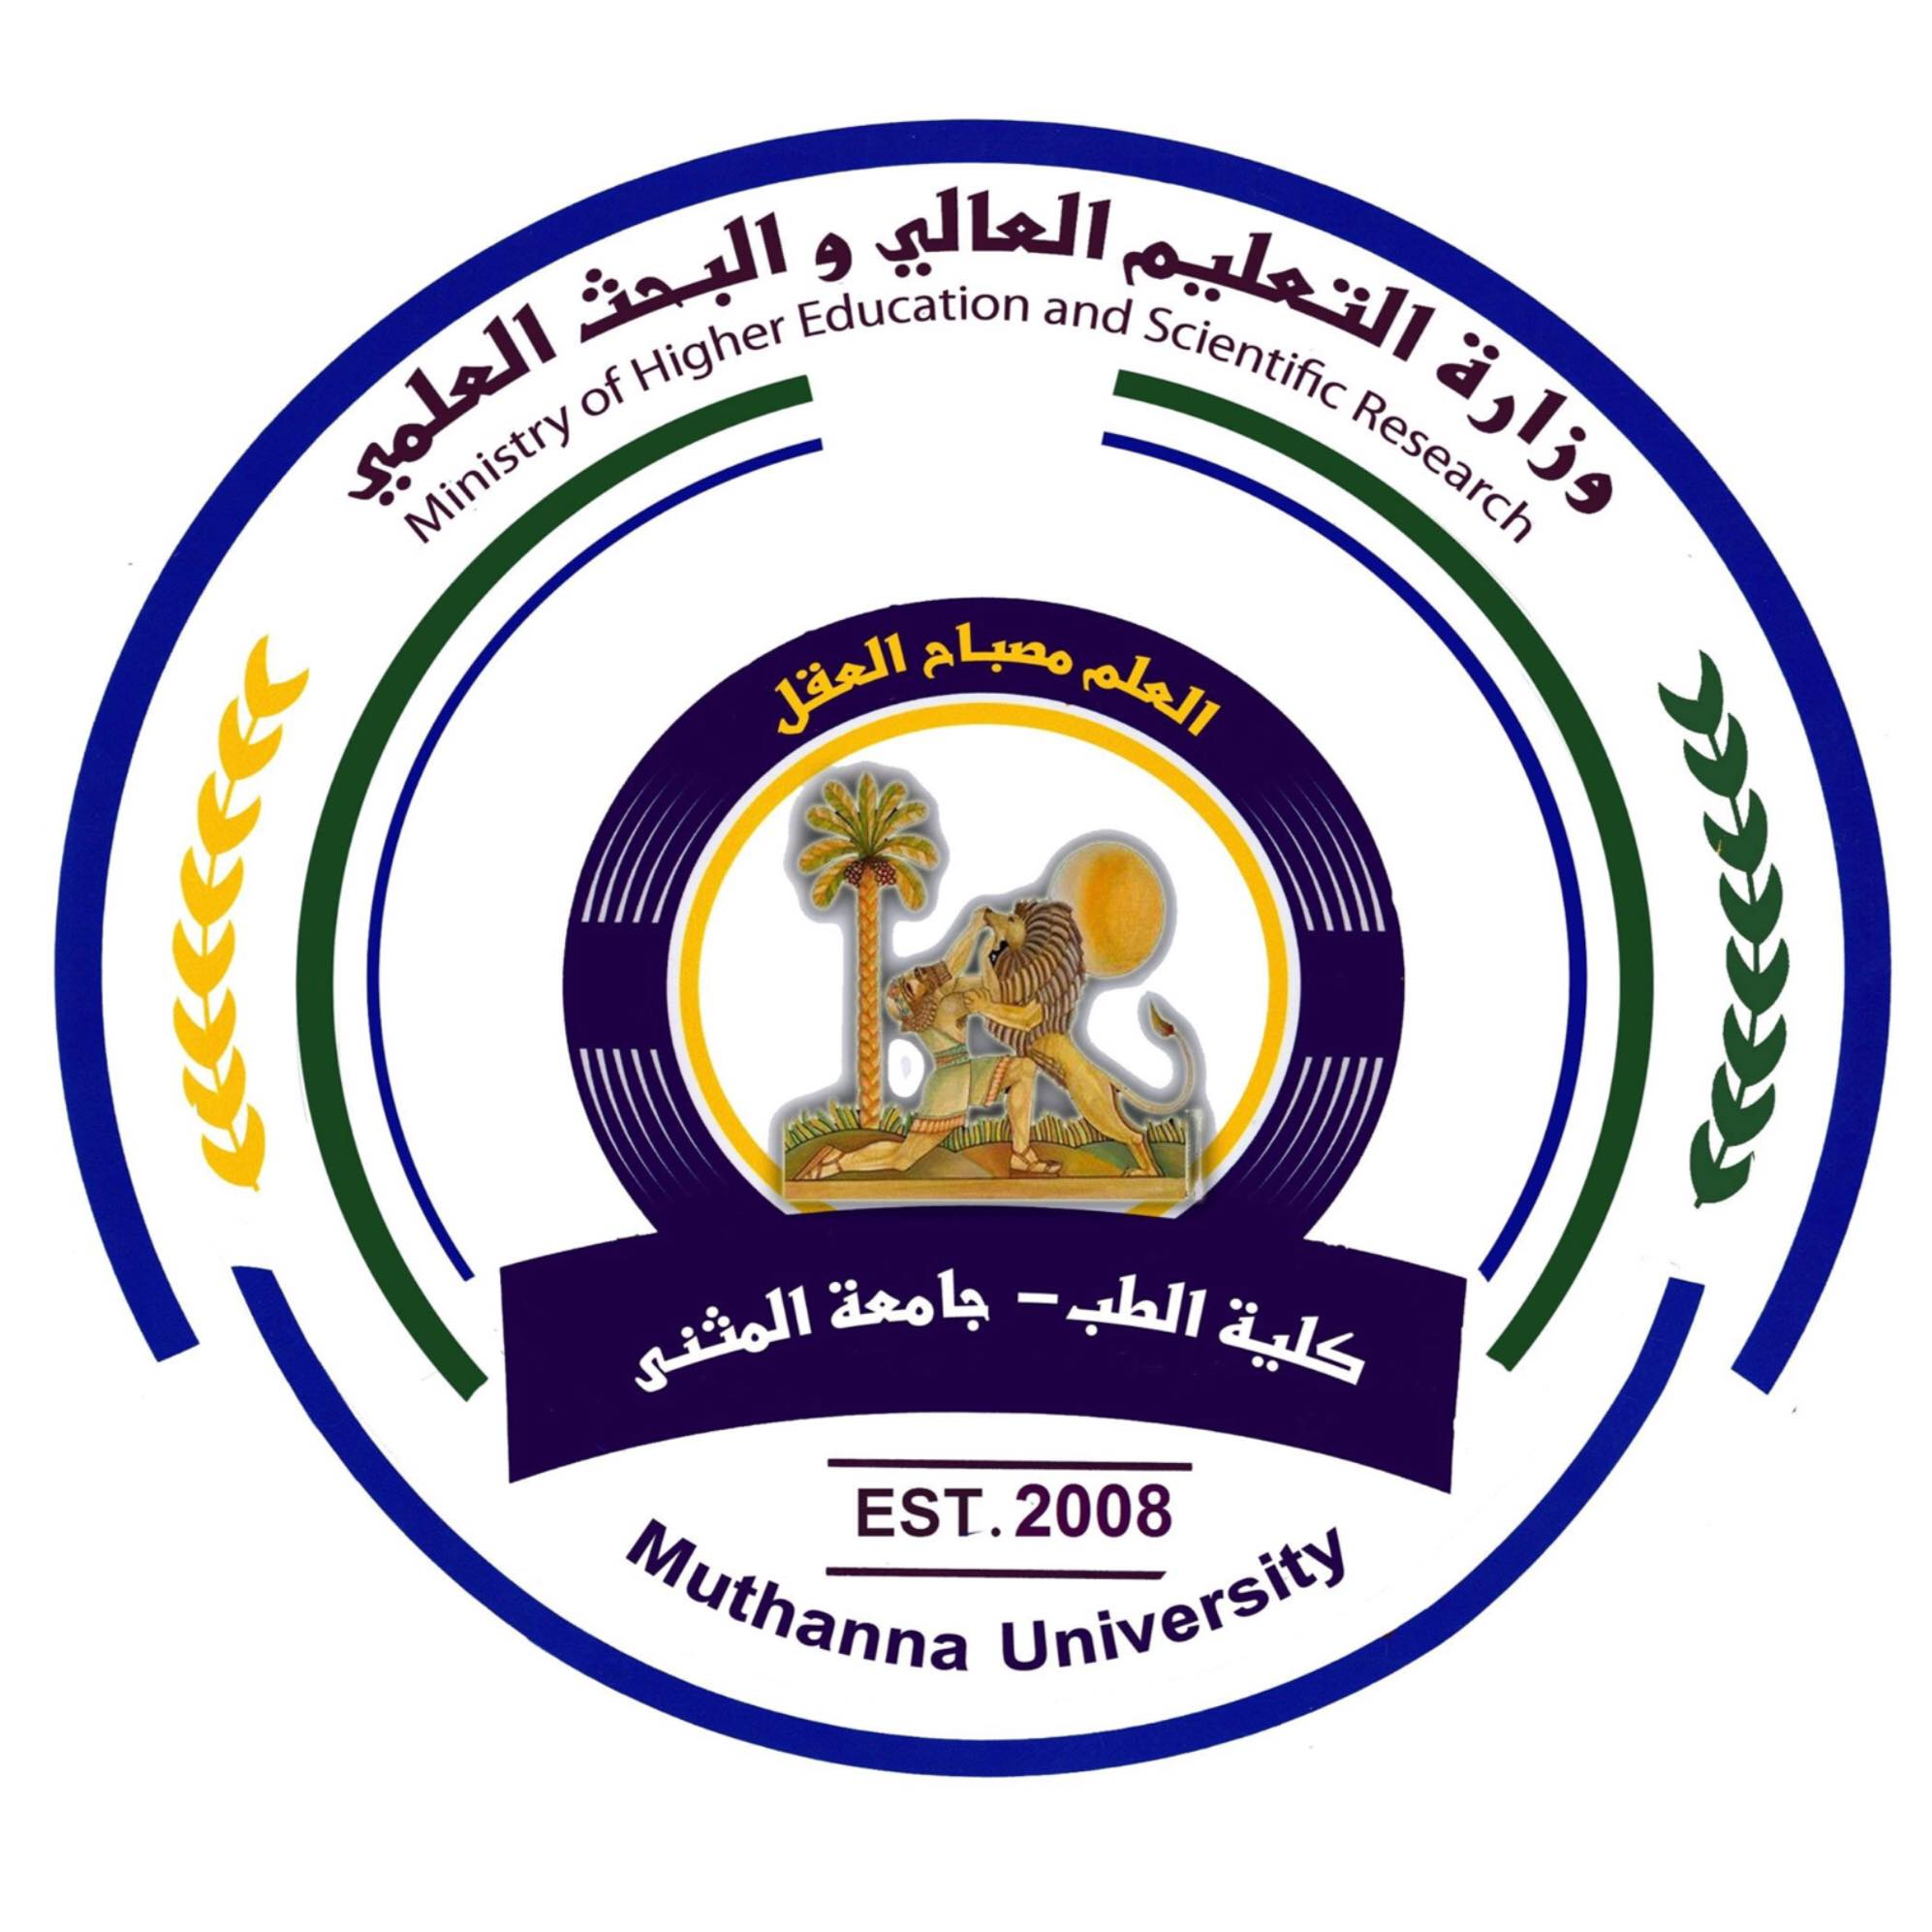 Al-Muthana University  Scholarship programs